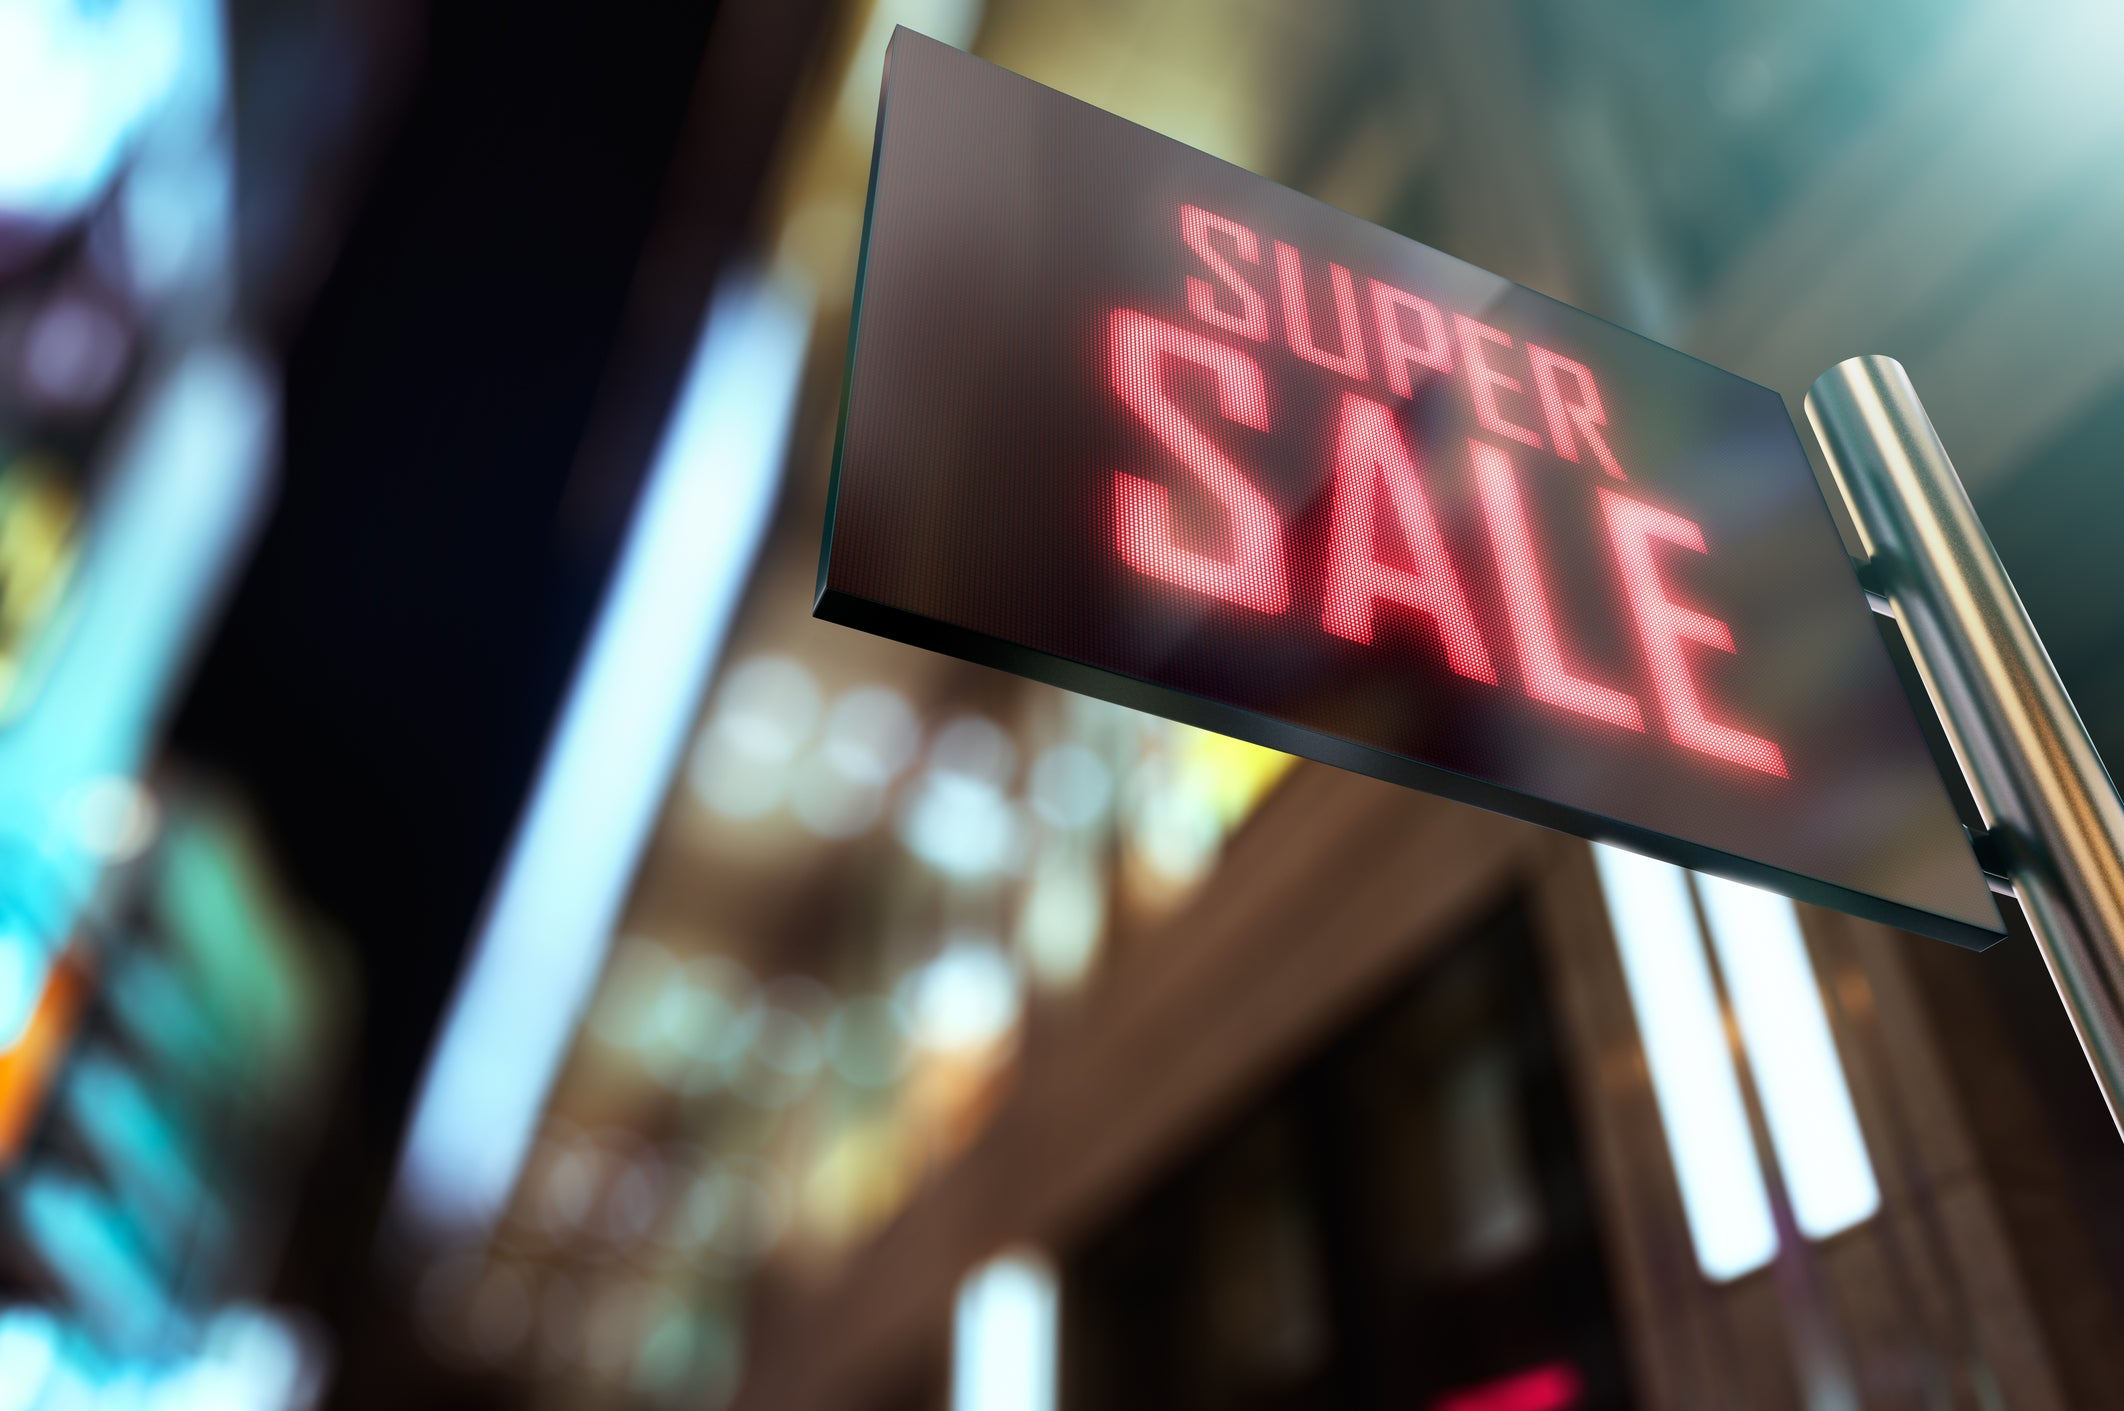 Like Discounts? These Game-Changing Stocks Are 40% (or More) Below Their 52-Week Highs